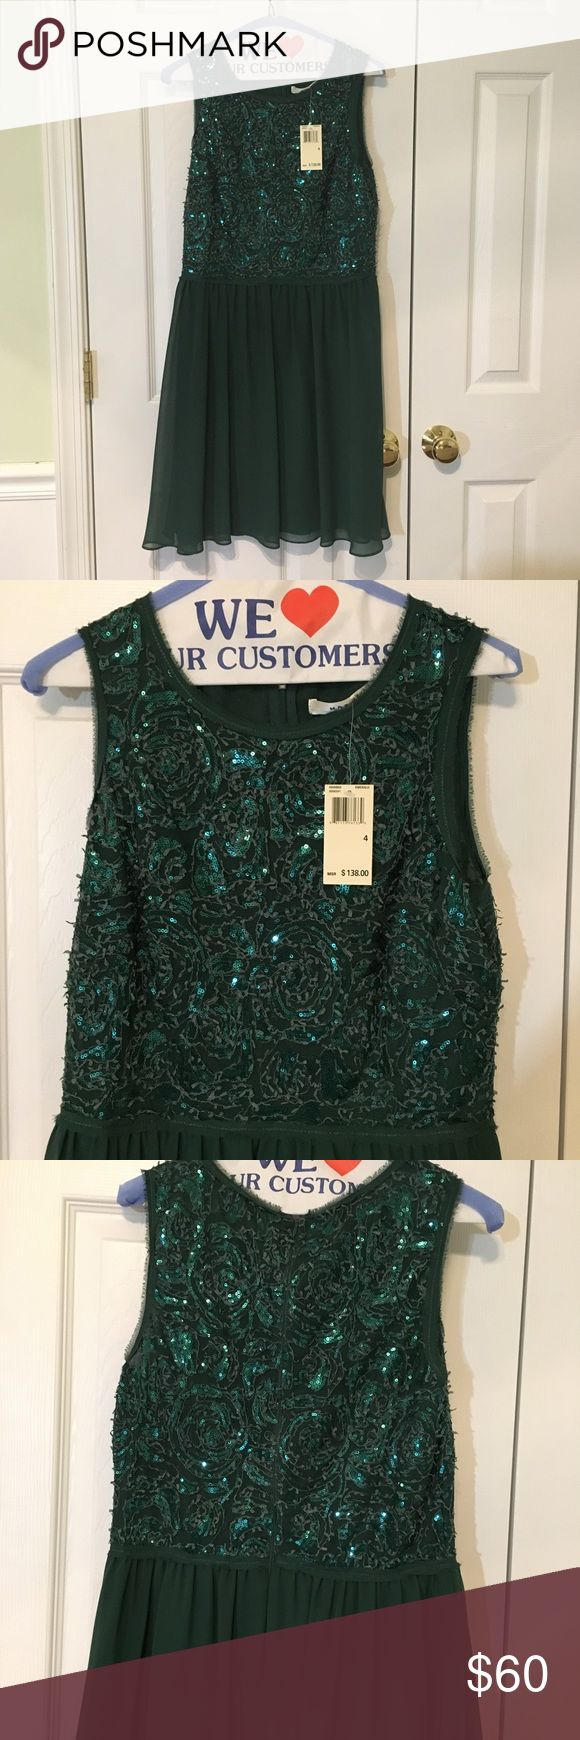 Green Sparkly dress NWT, brand Max Studio, marked as Lulu's for exposure - make offers Lulu's Dresses